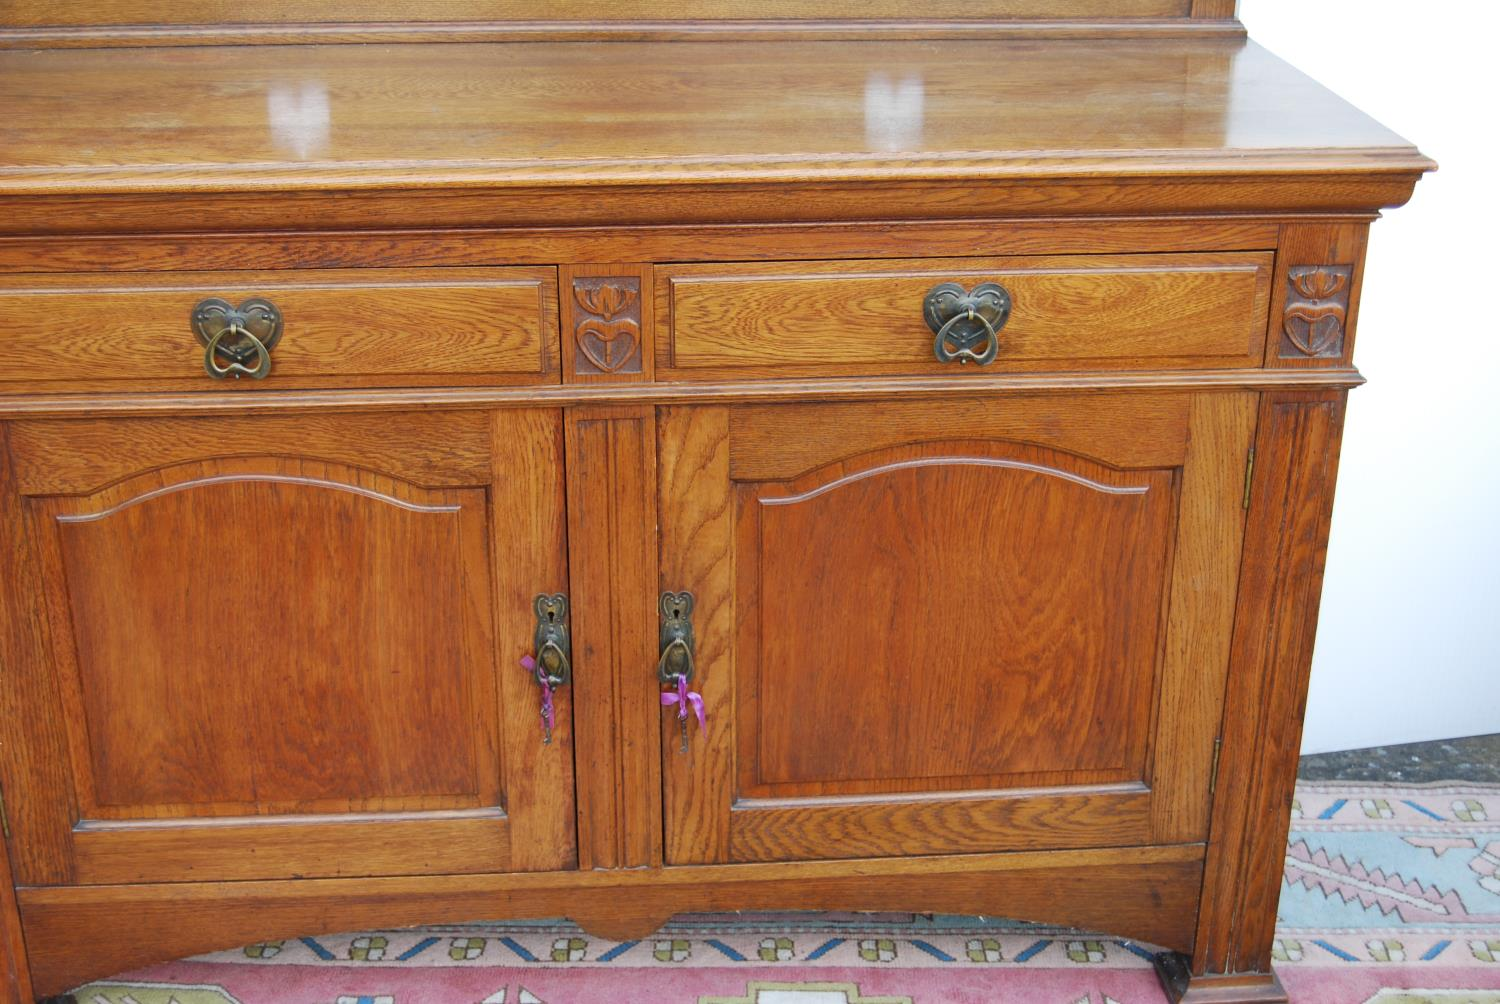 Aesthetic oak sideboard, the back panel with pierced inverted hearts, moulded rectangular top over - Image 4 of 7